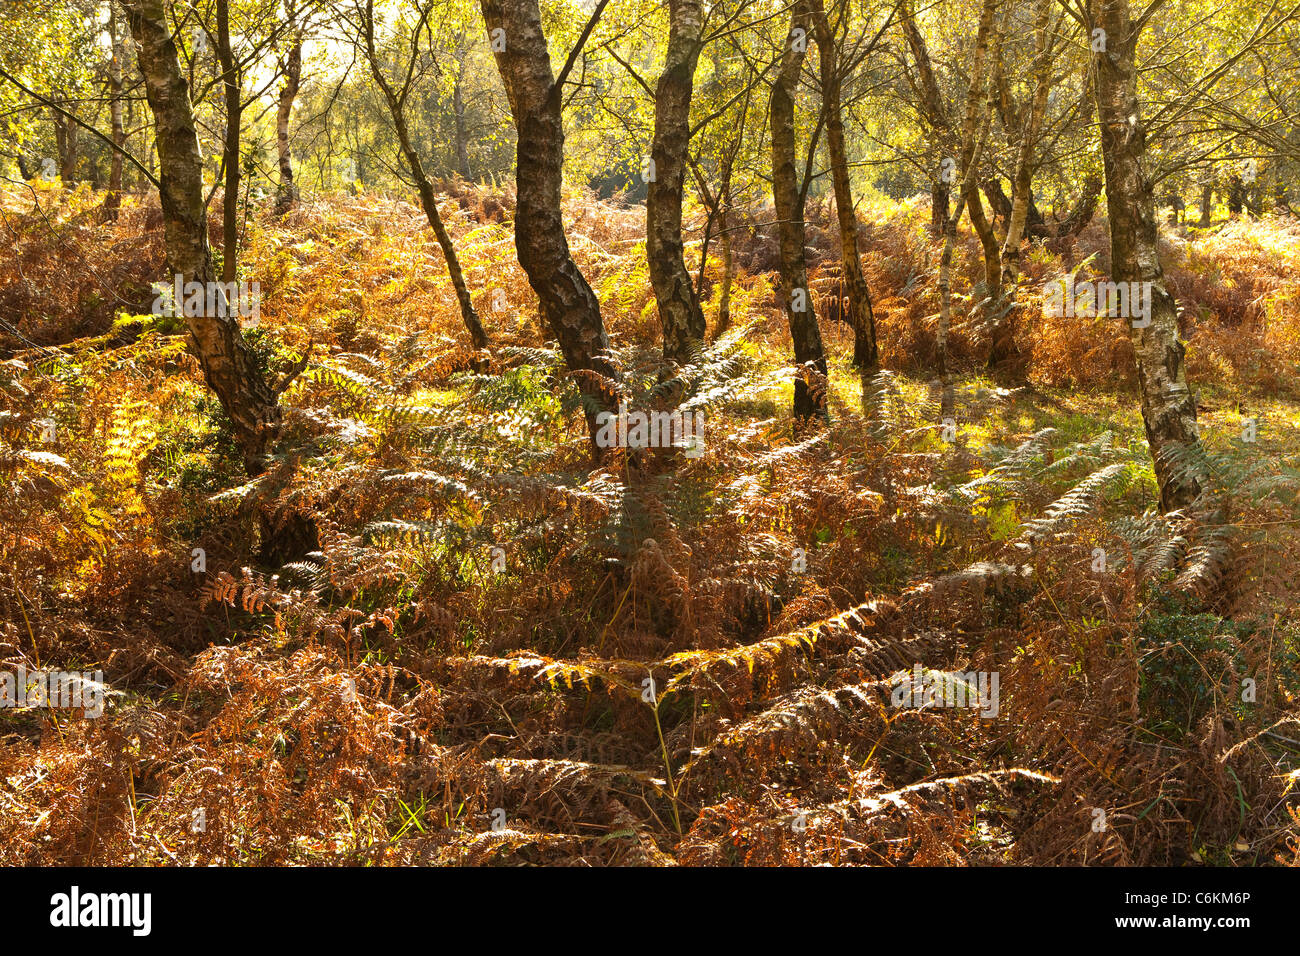 Sunlight on birch trees and bracken in the New Forest national park in Autumn - Stock Image